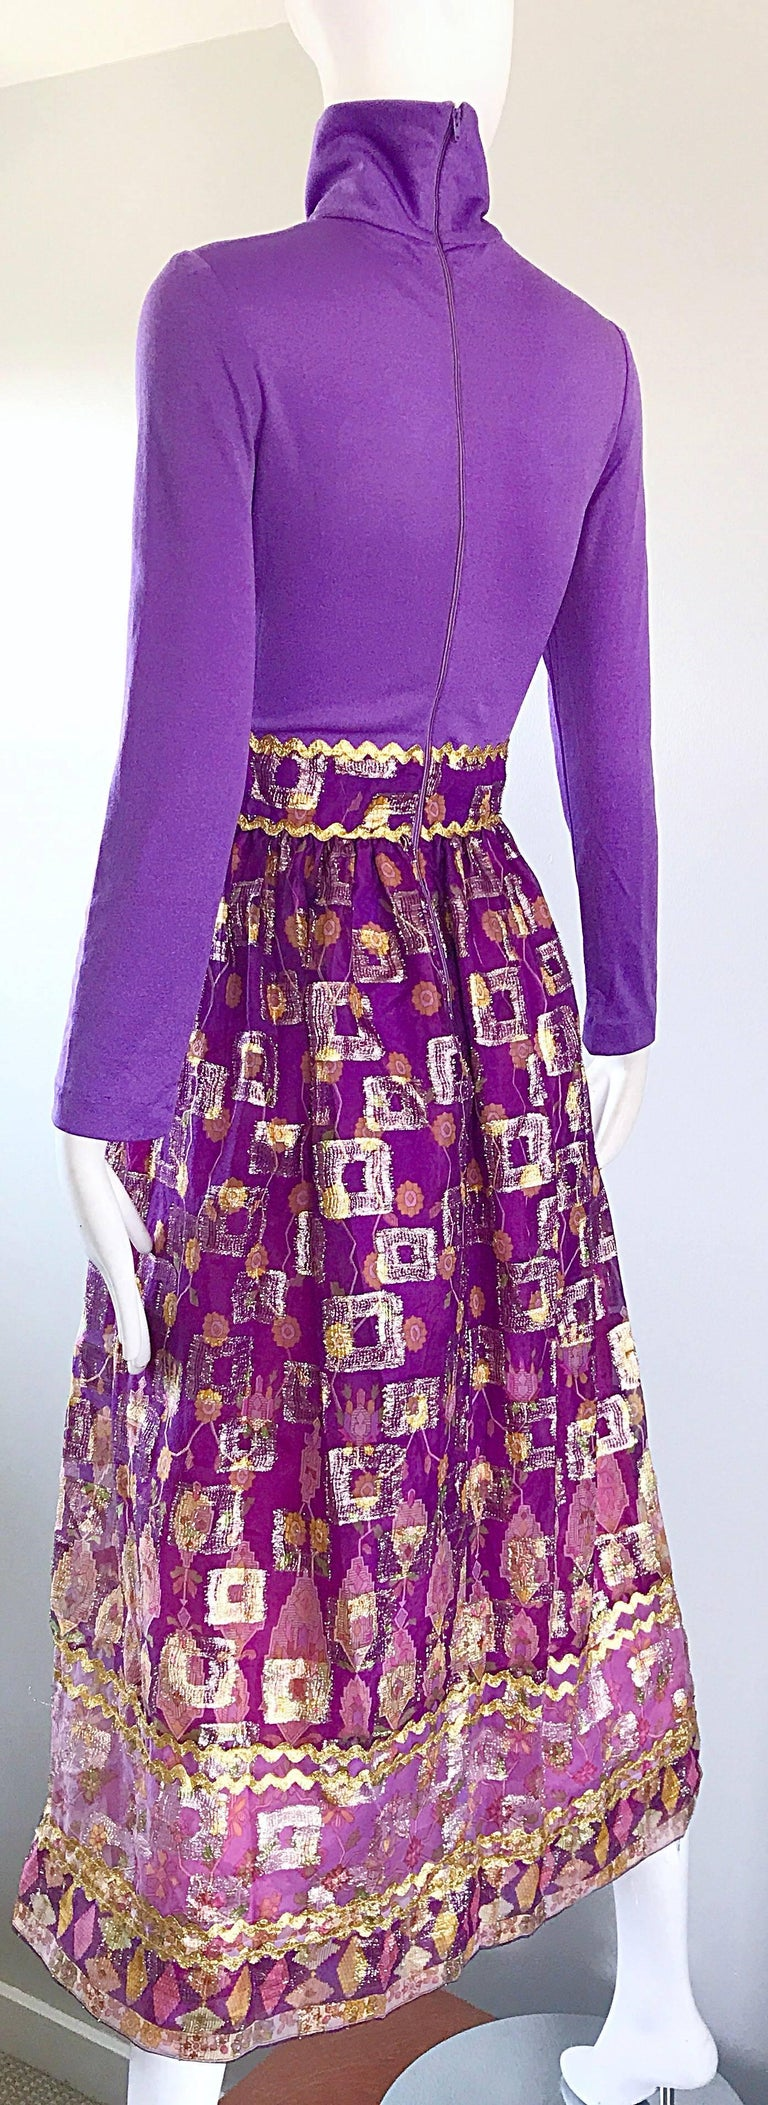 Beautiful 1970s Purple Lavender Ethnic Batik Print High Neck Vintage Midi Dress For Sale 4